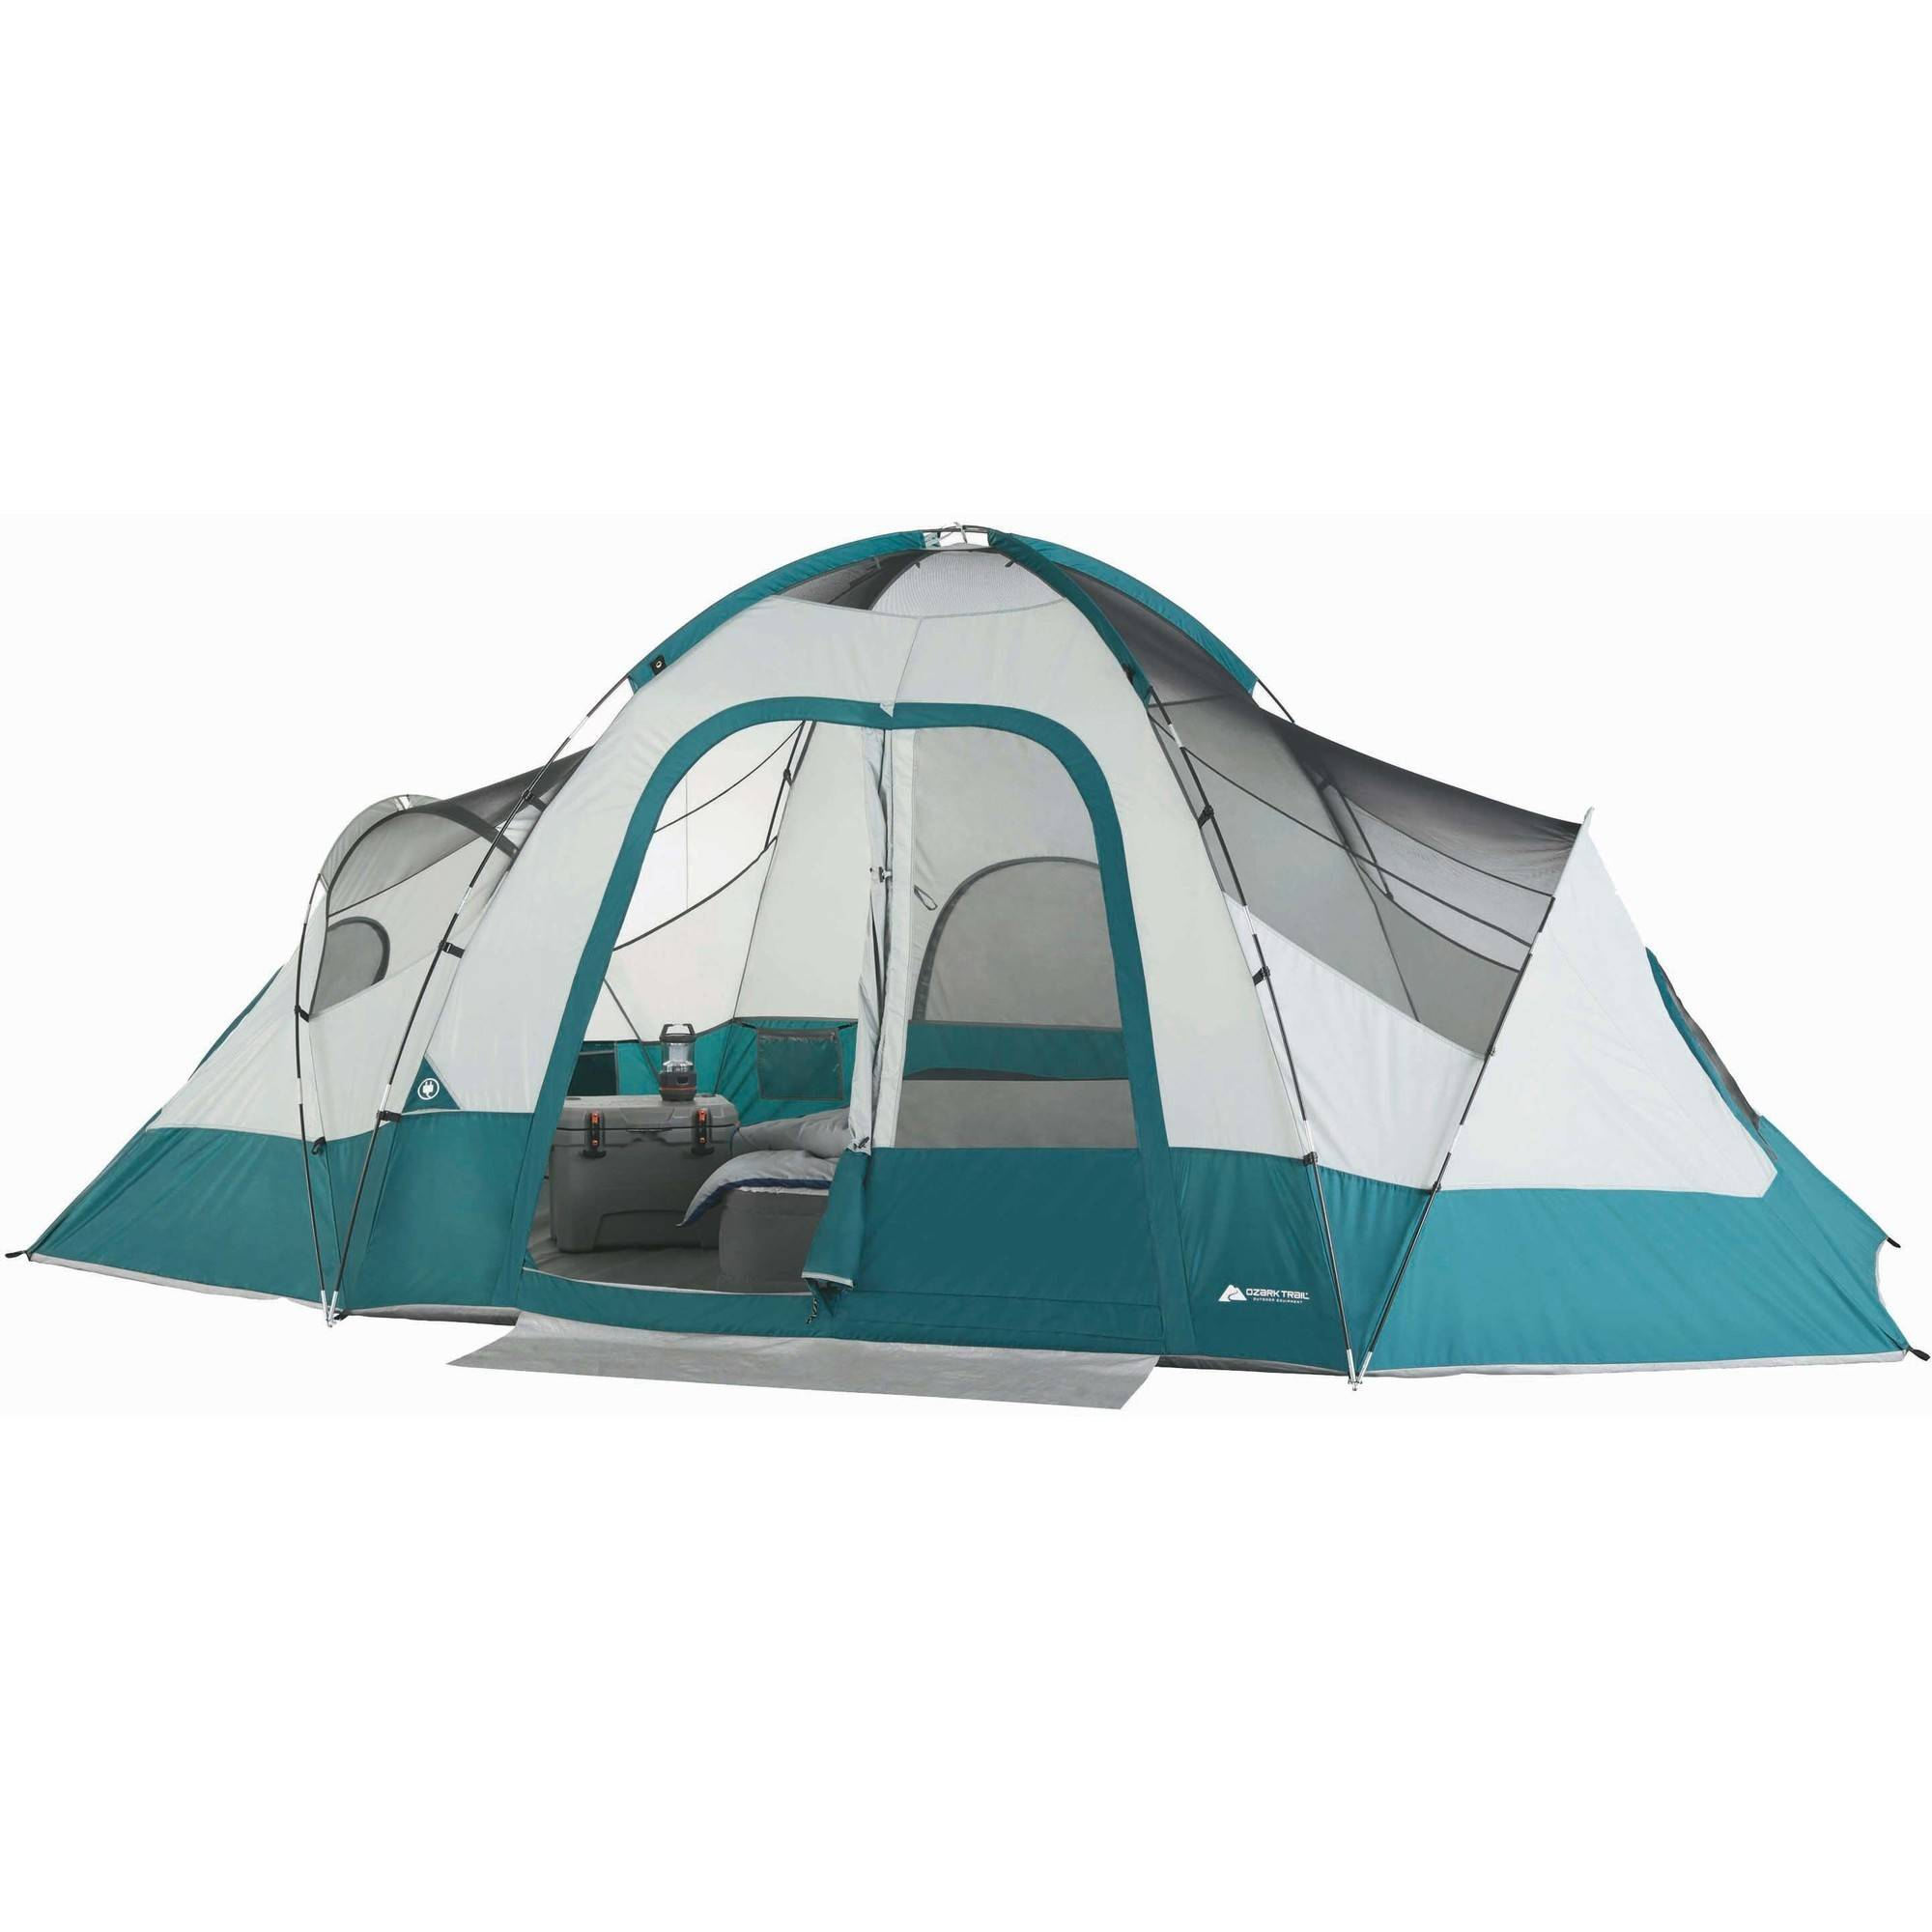 sc 1 st  Walmart & Ozark Trail 8-Person Family Tent - Walmart.com